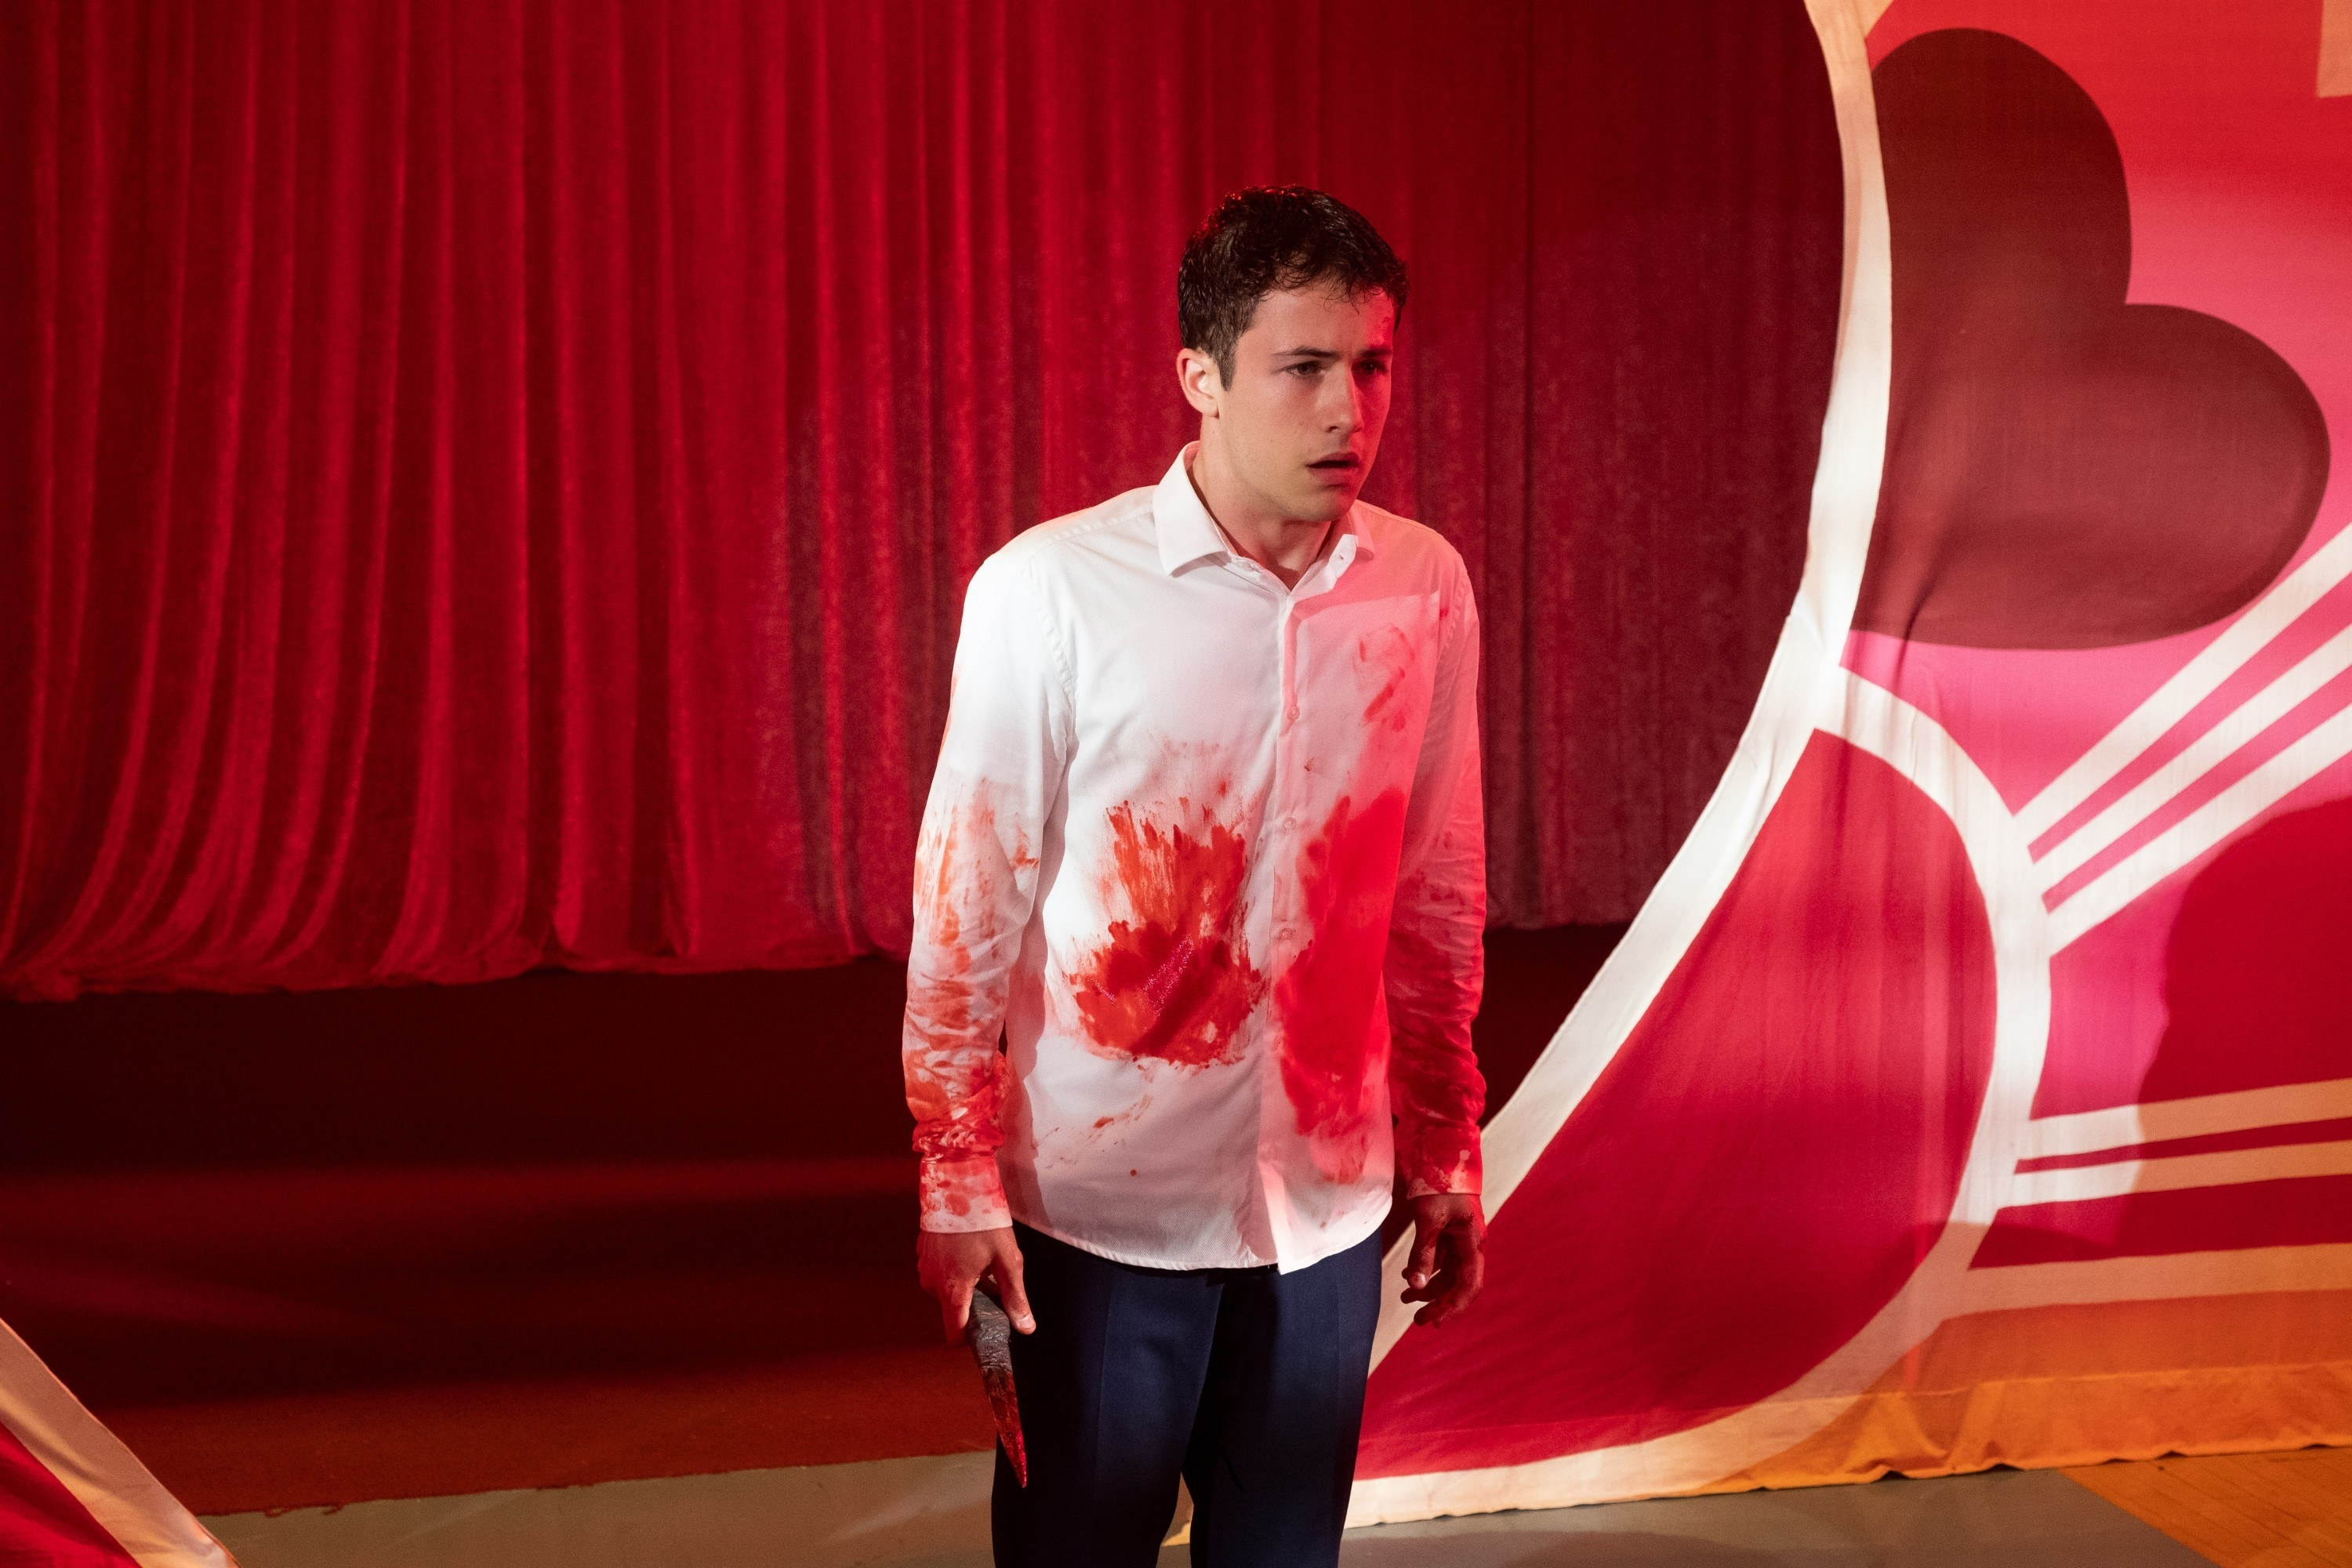 Clay with blood on his shirt